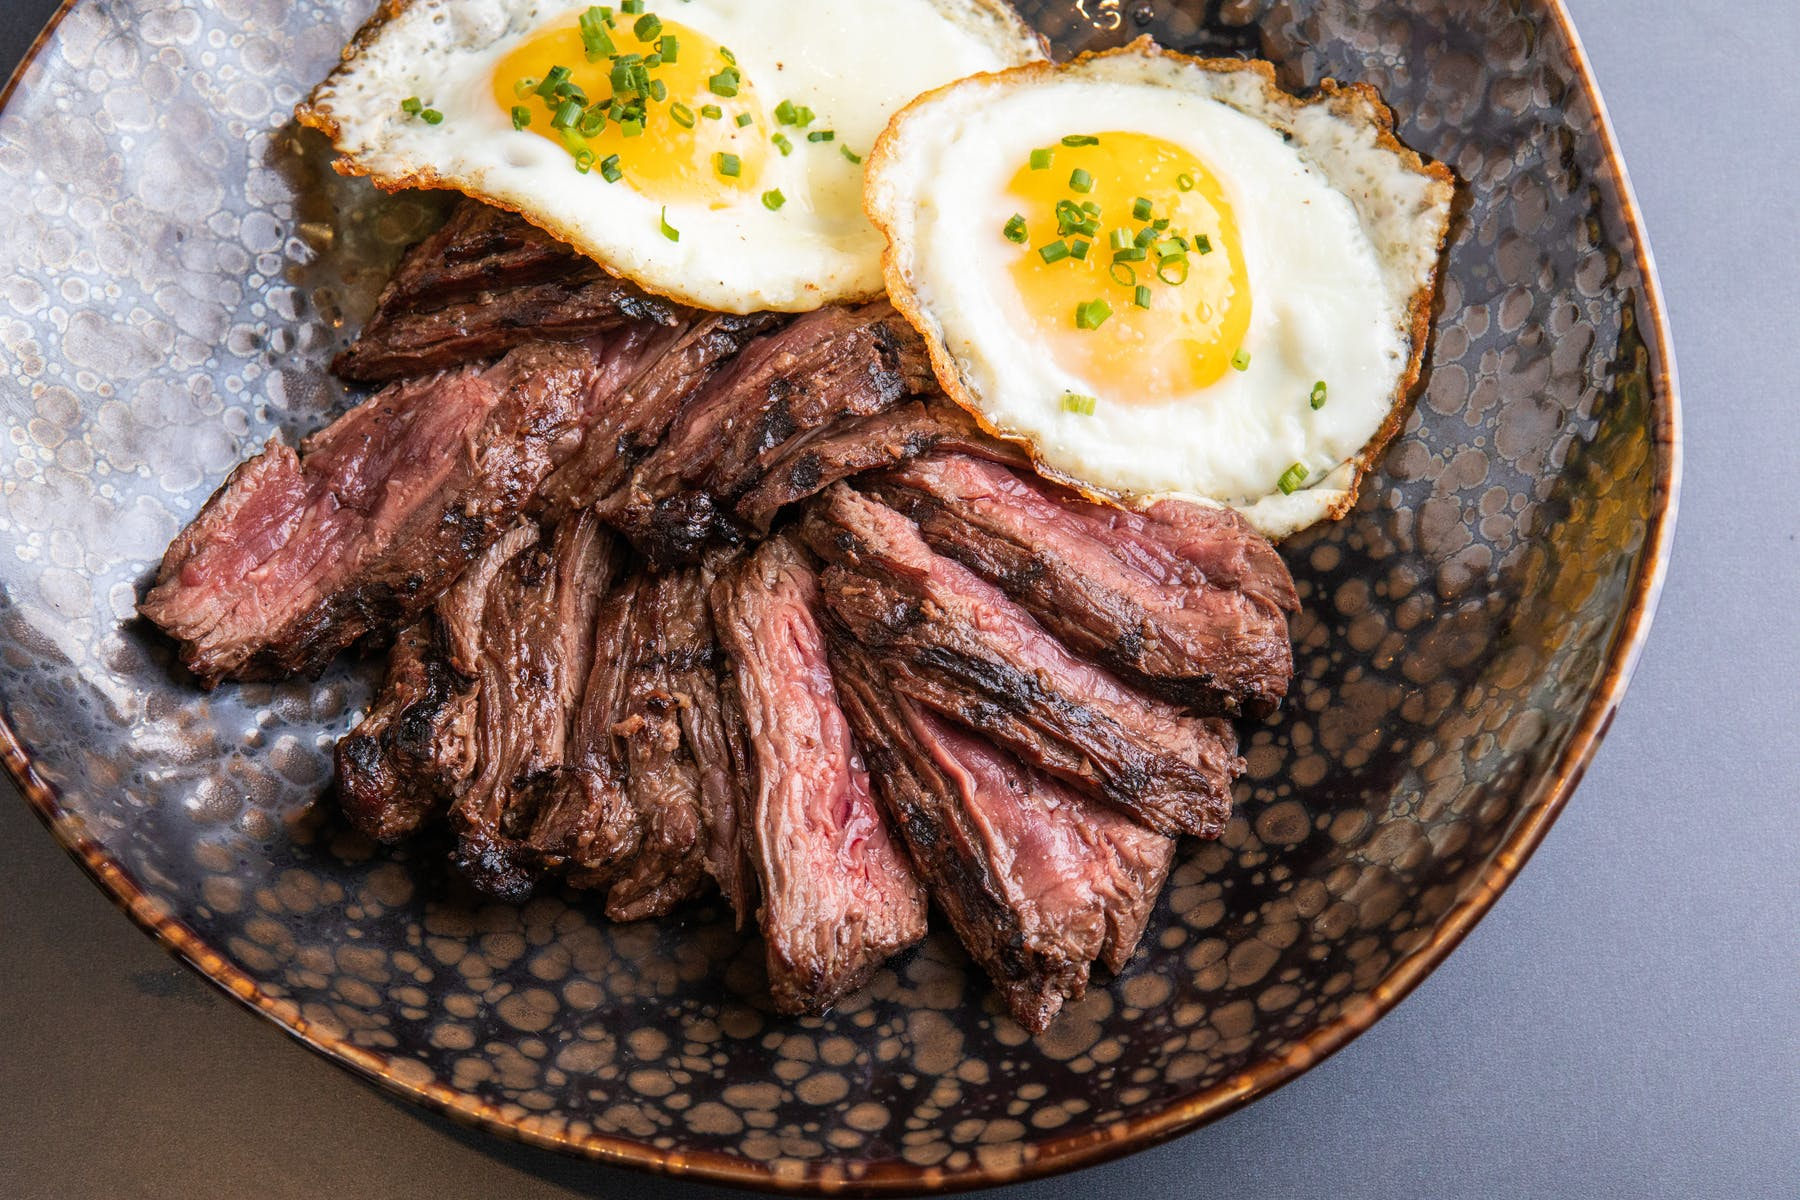 a plate with grillled meat and eggs